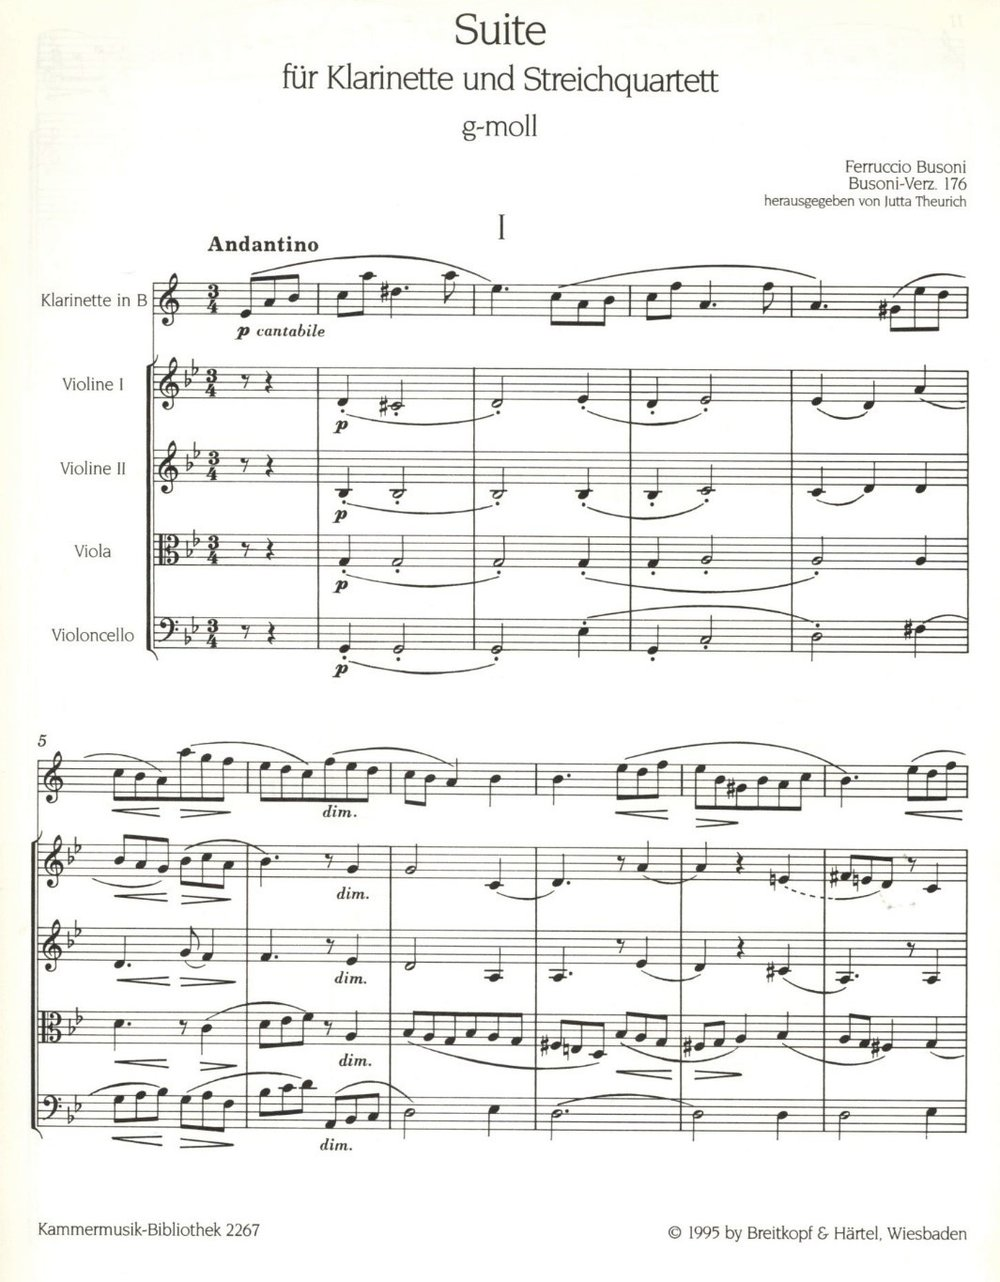 The opening of Busoni's Suite for Clarinet and String Quartet (note the lush harmonies, lyrical melody and counterpoint played by the cello).